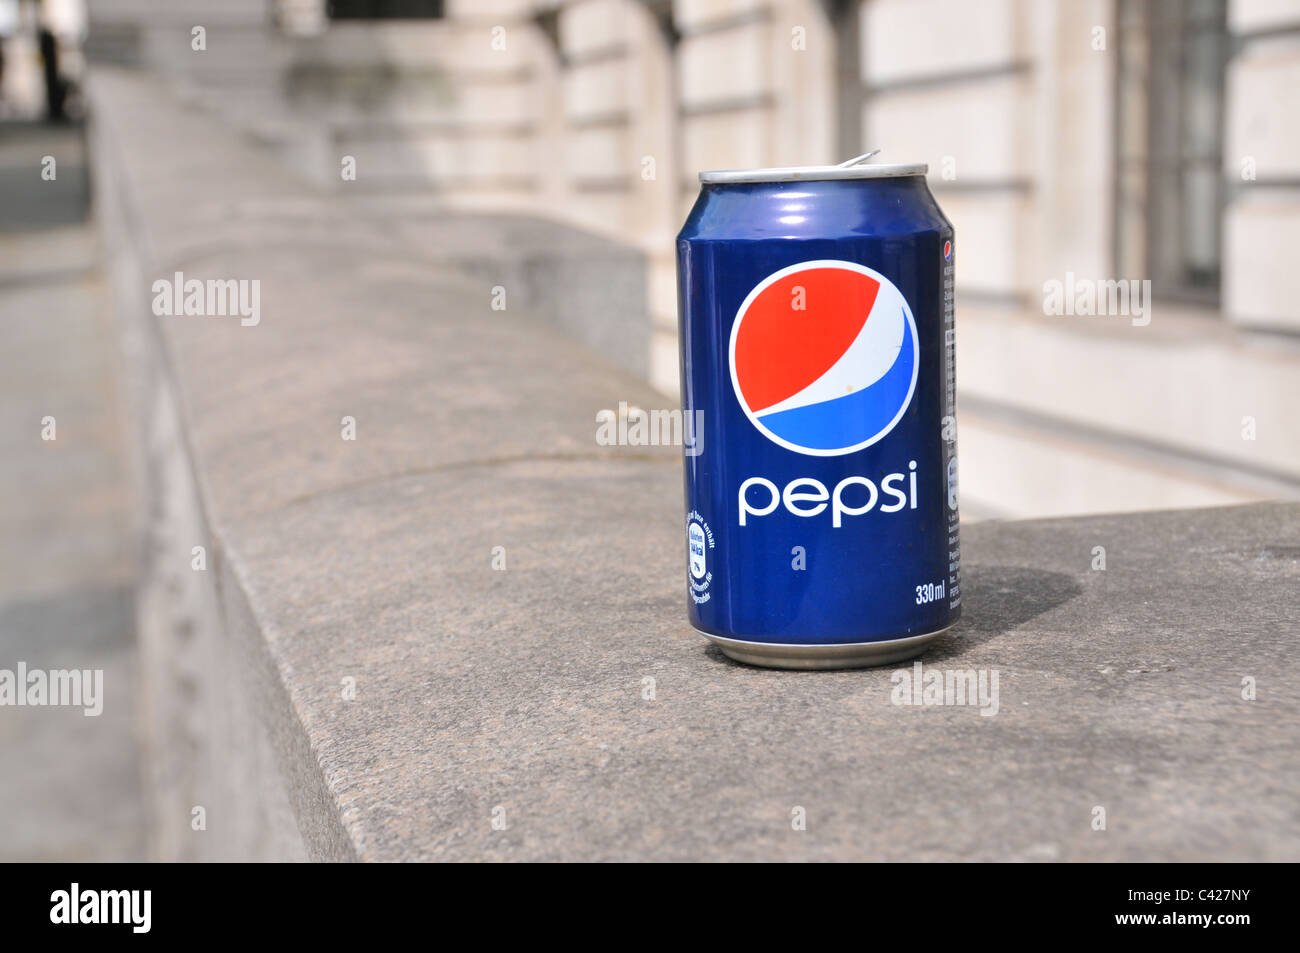 pepsi-can-cola-left-on-railing-london-li